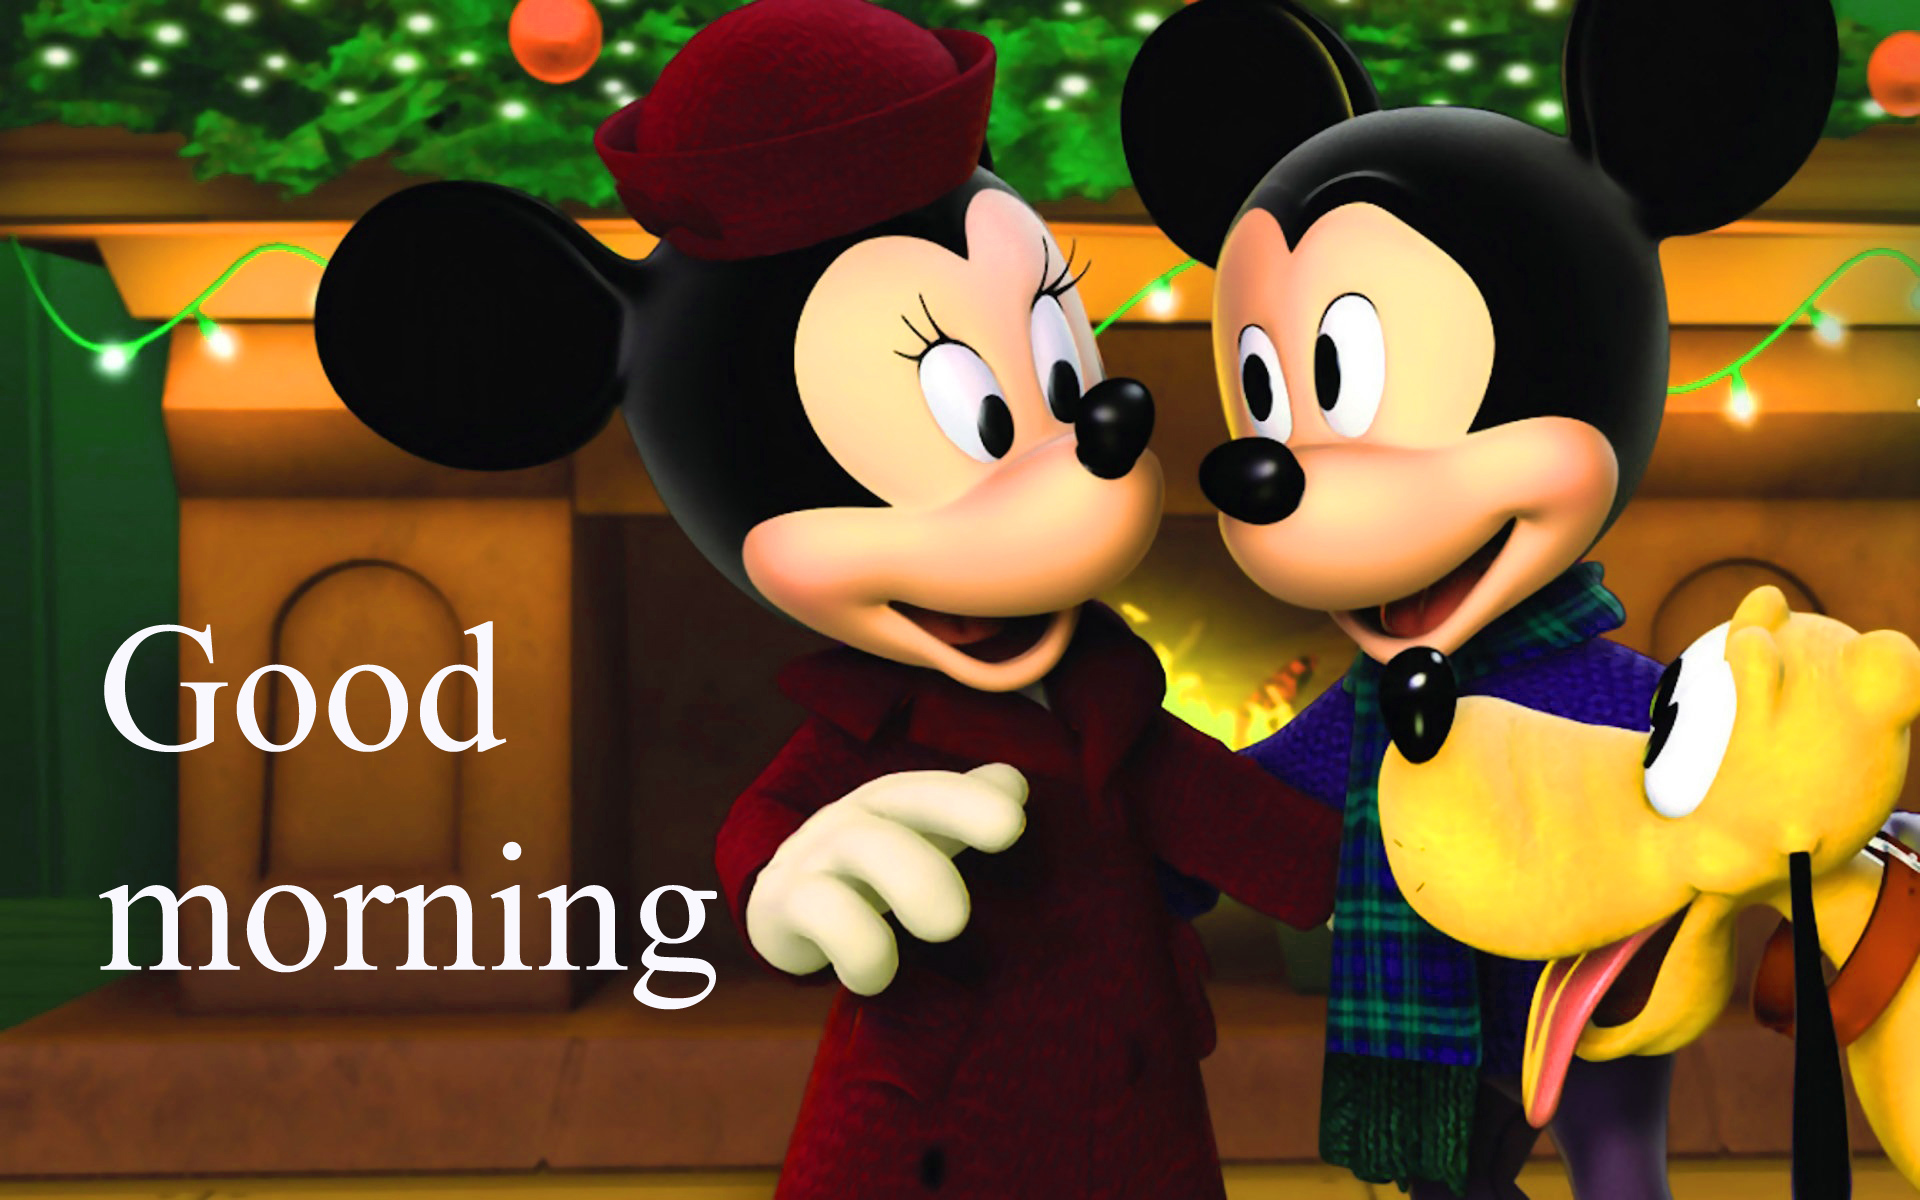 Good morning  wishes with mickey Images Photo Wallpaper HD Download